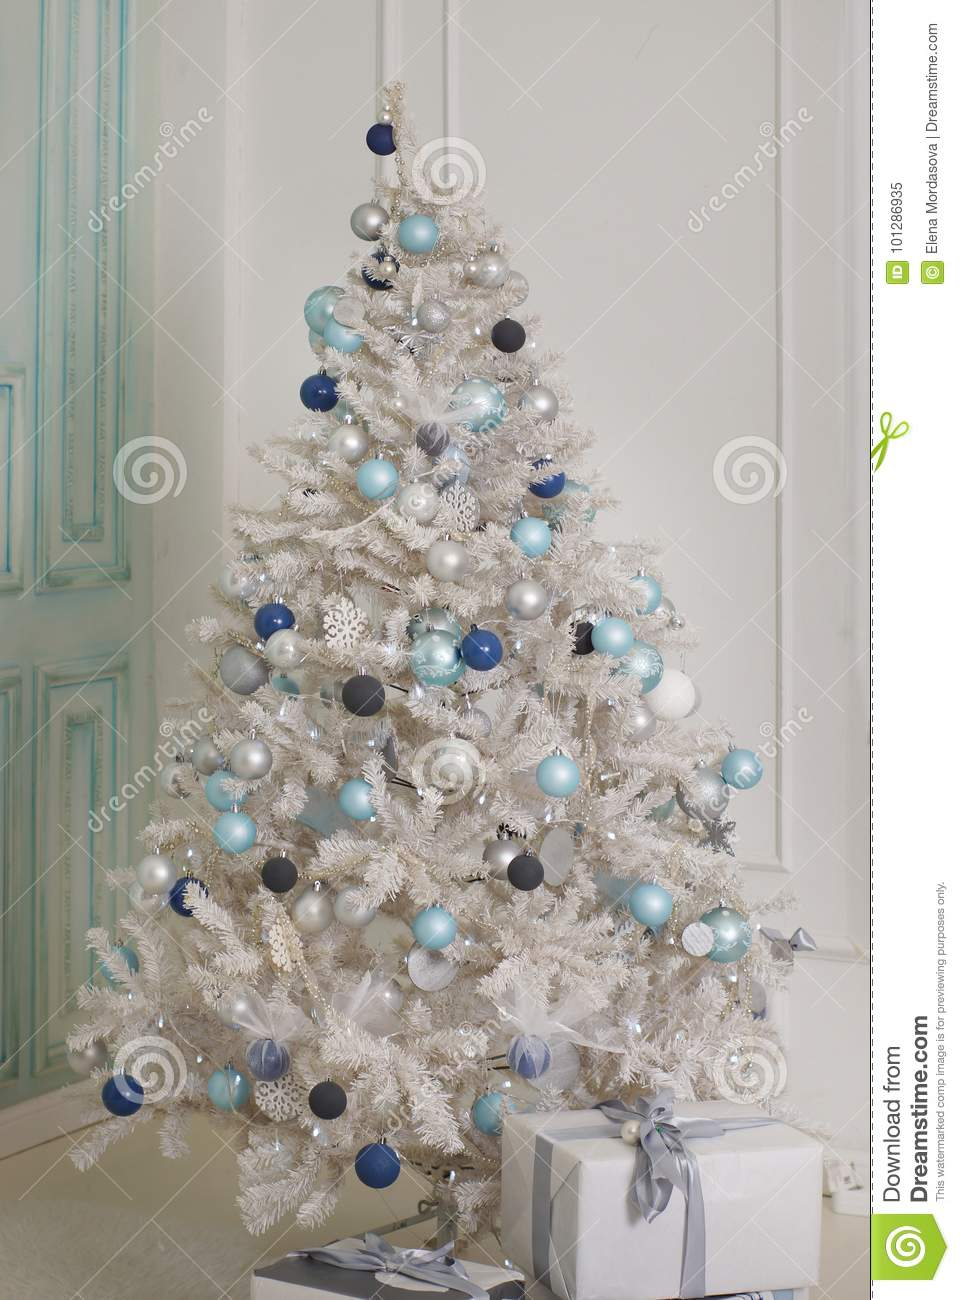 download a decorated christmas tree stands near a bright wall artificial white spruce with blue